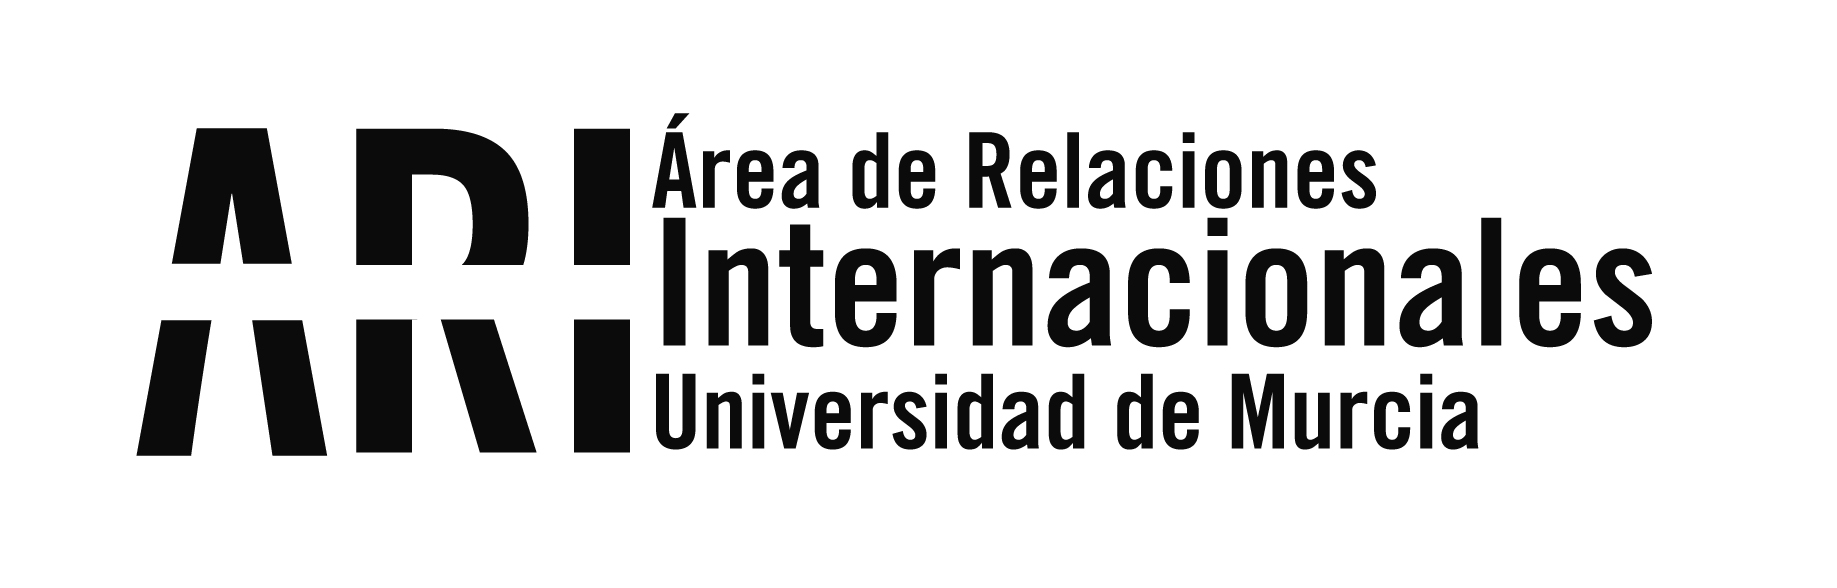 "La UM recibe a los socios del proyecto europeo ""iQEREL: International Quality Evaluation Resource for Educational Leader"" - Área de Relaciones Internacionales"